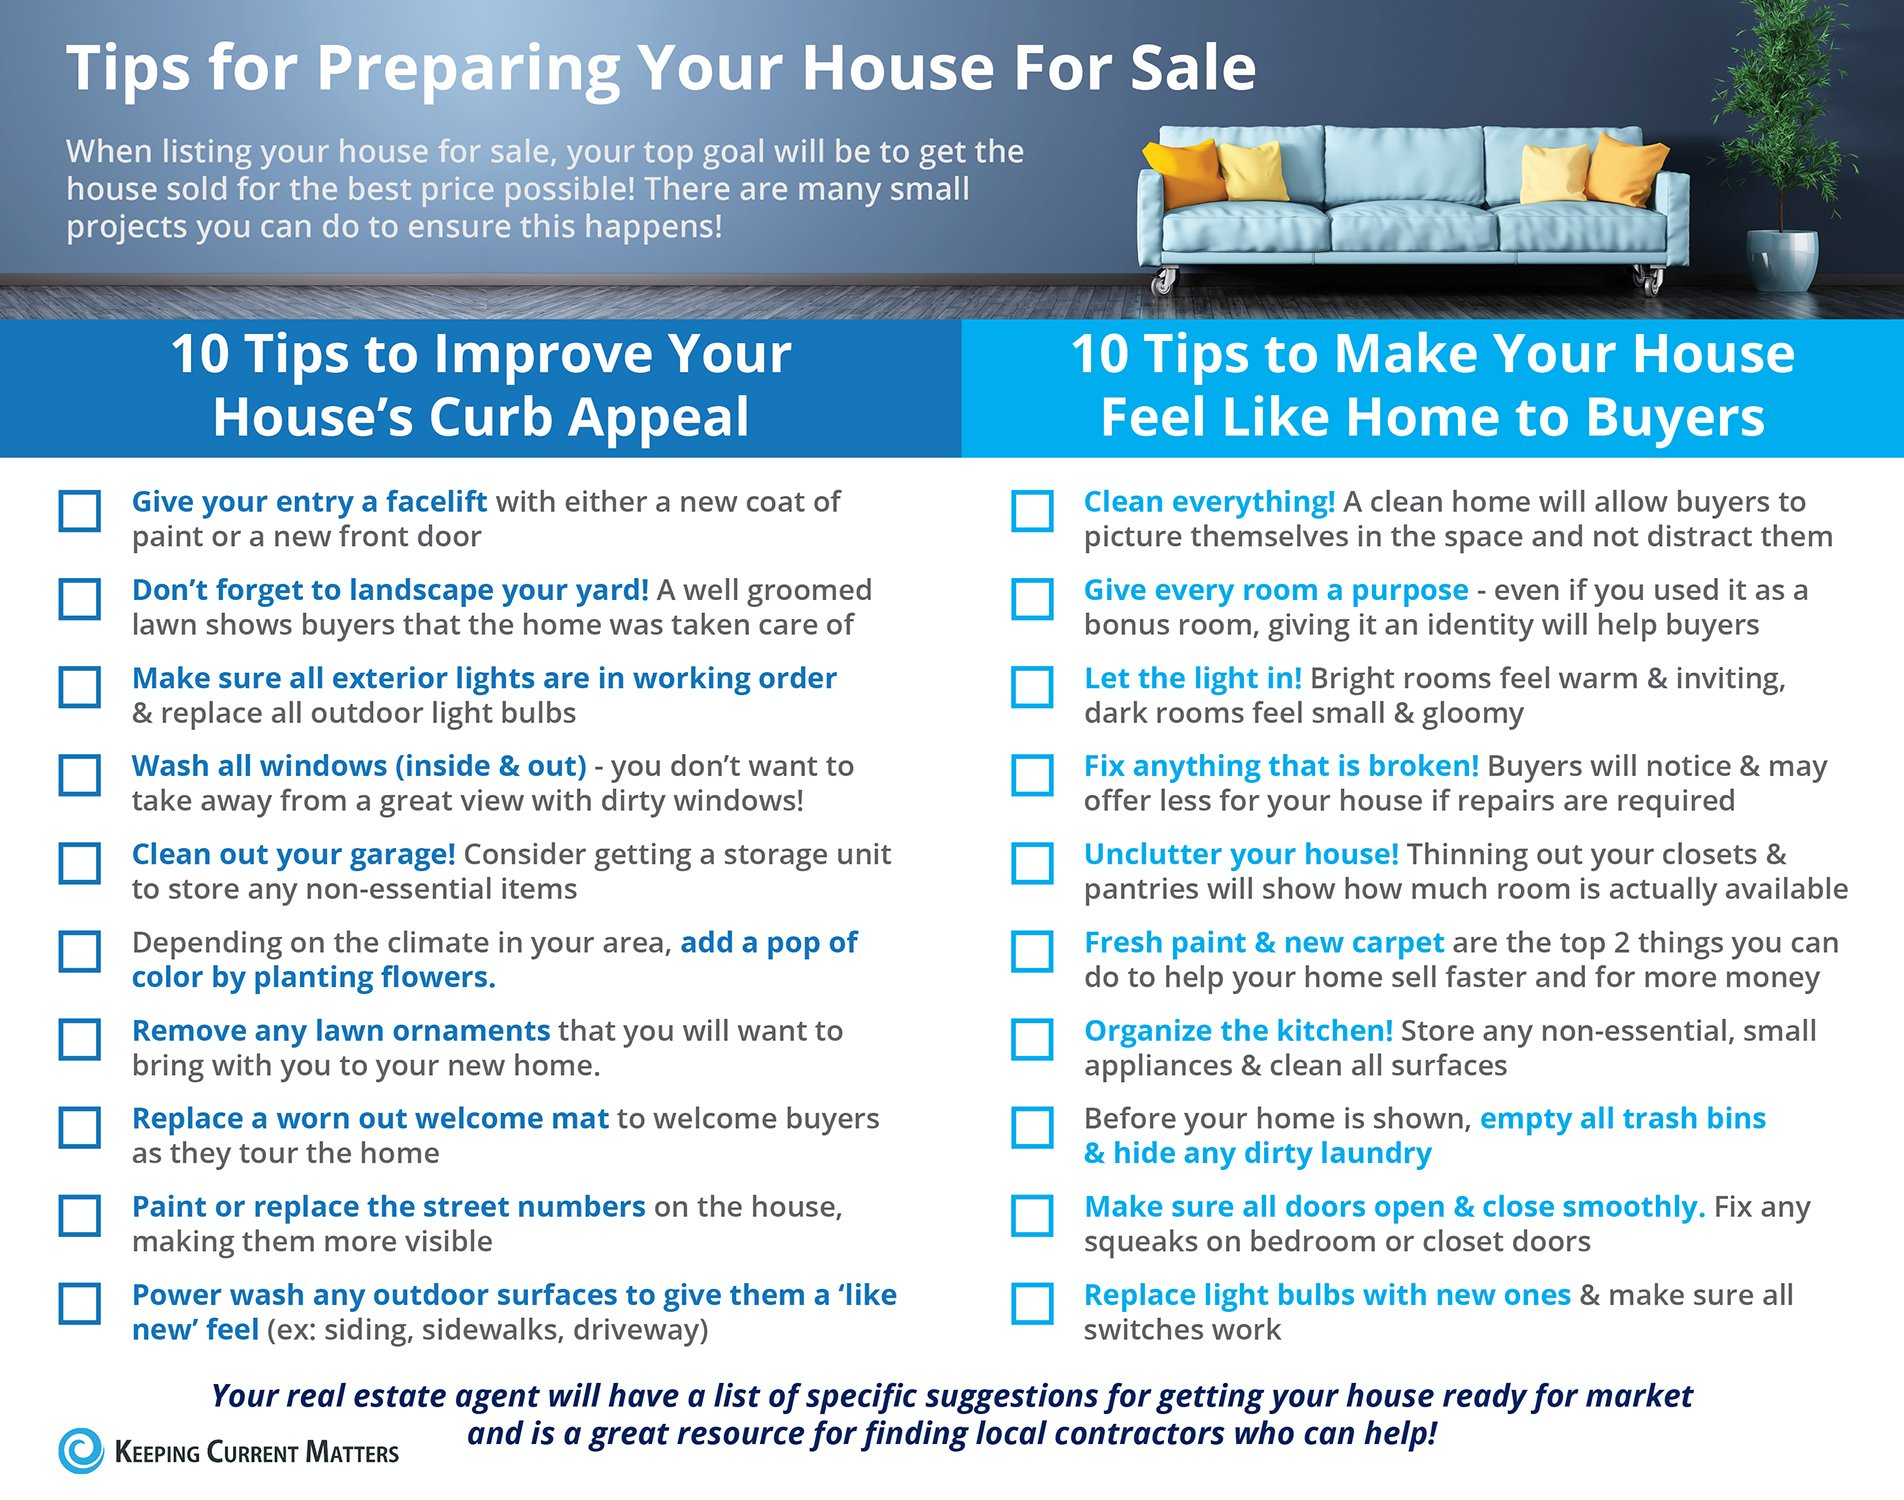 Tips for Preparing Your House For Sale [INFOGRAPHIC] | Keeping Current Matters